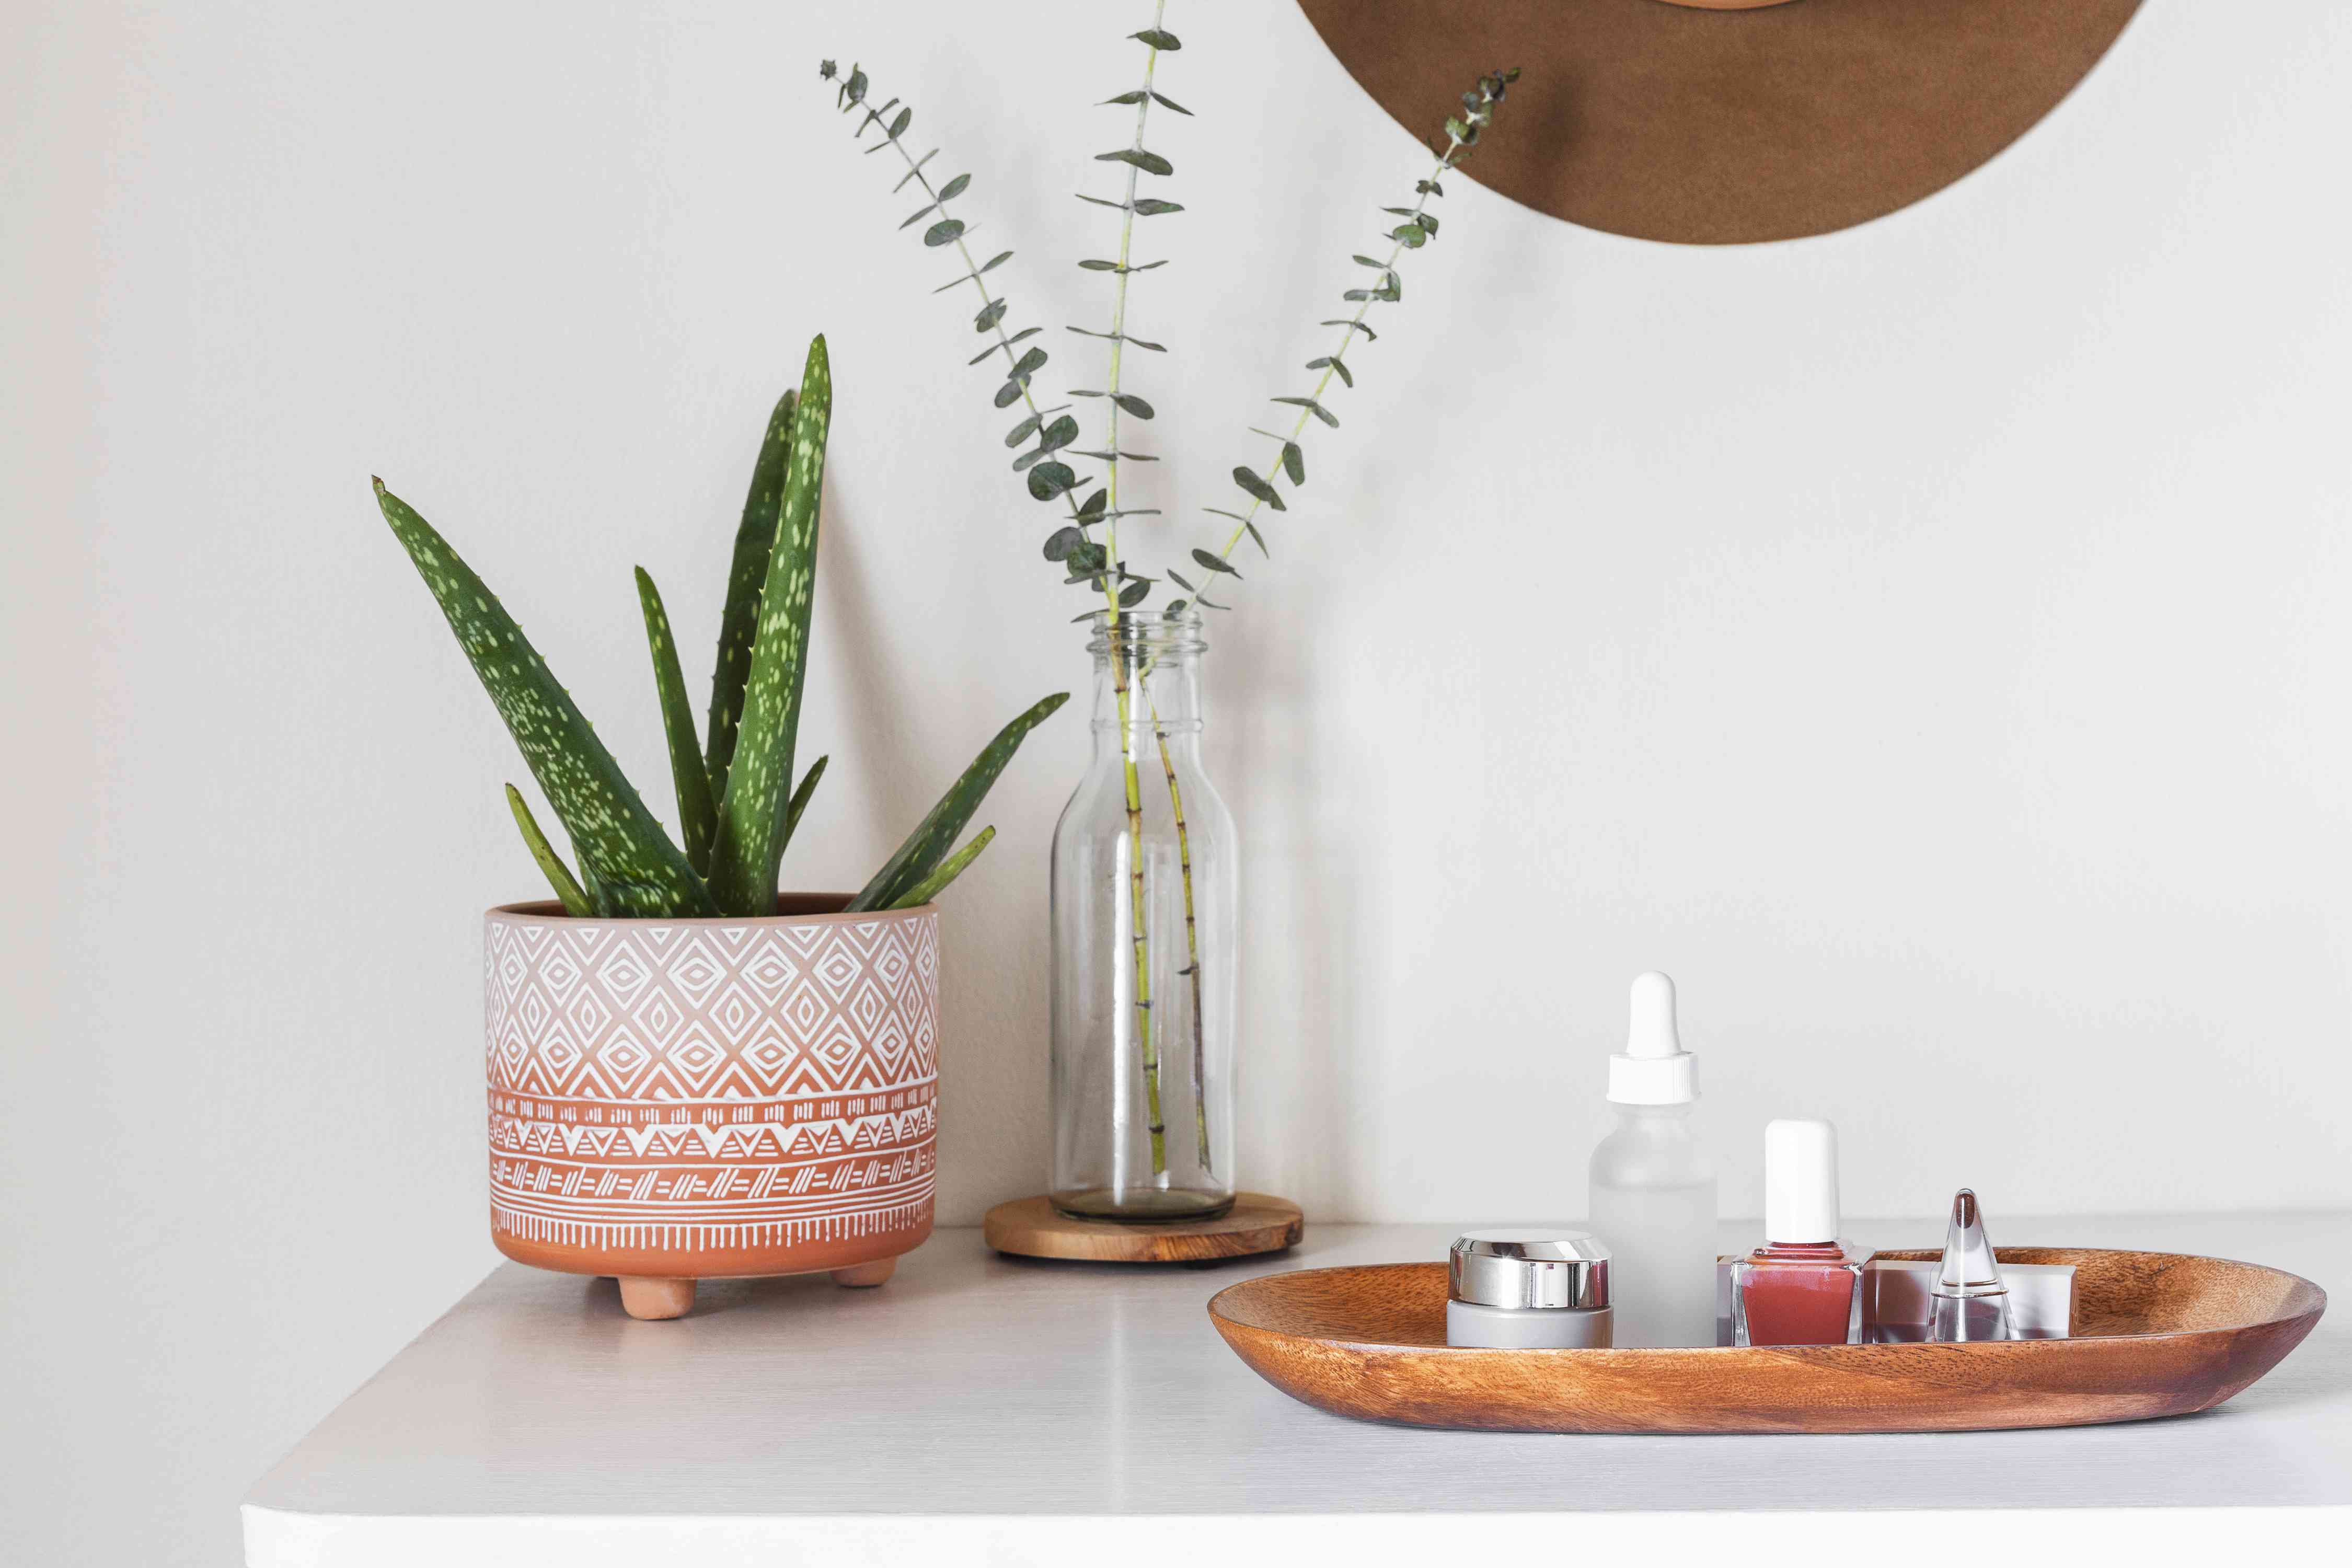 incorporating a tray into dresser top decor